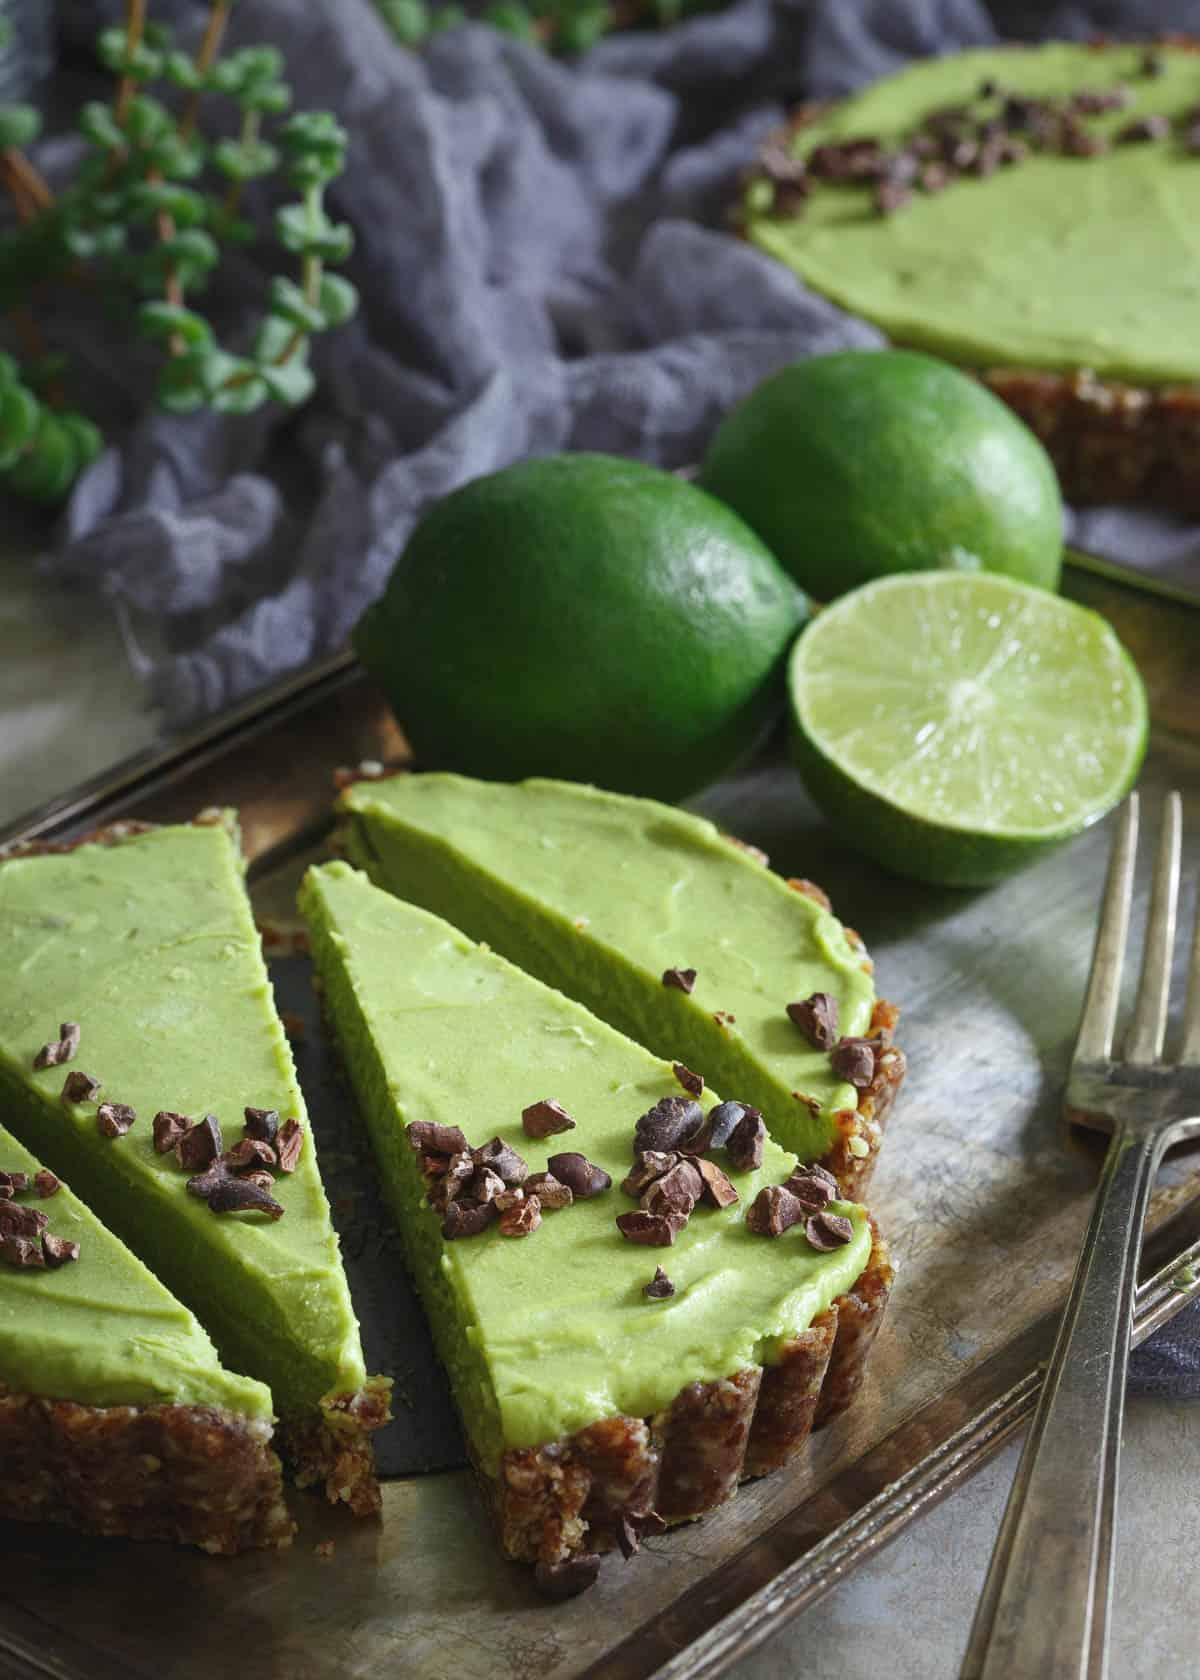 This No Bake Lime Avocado Tart is grain free, gluten free and paleo. A healthy and delicious summer treat!